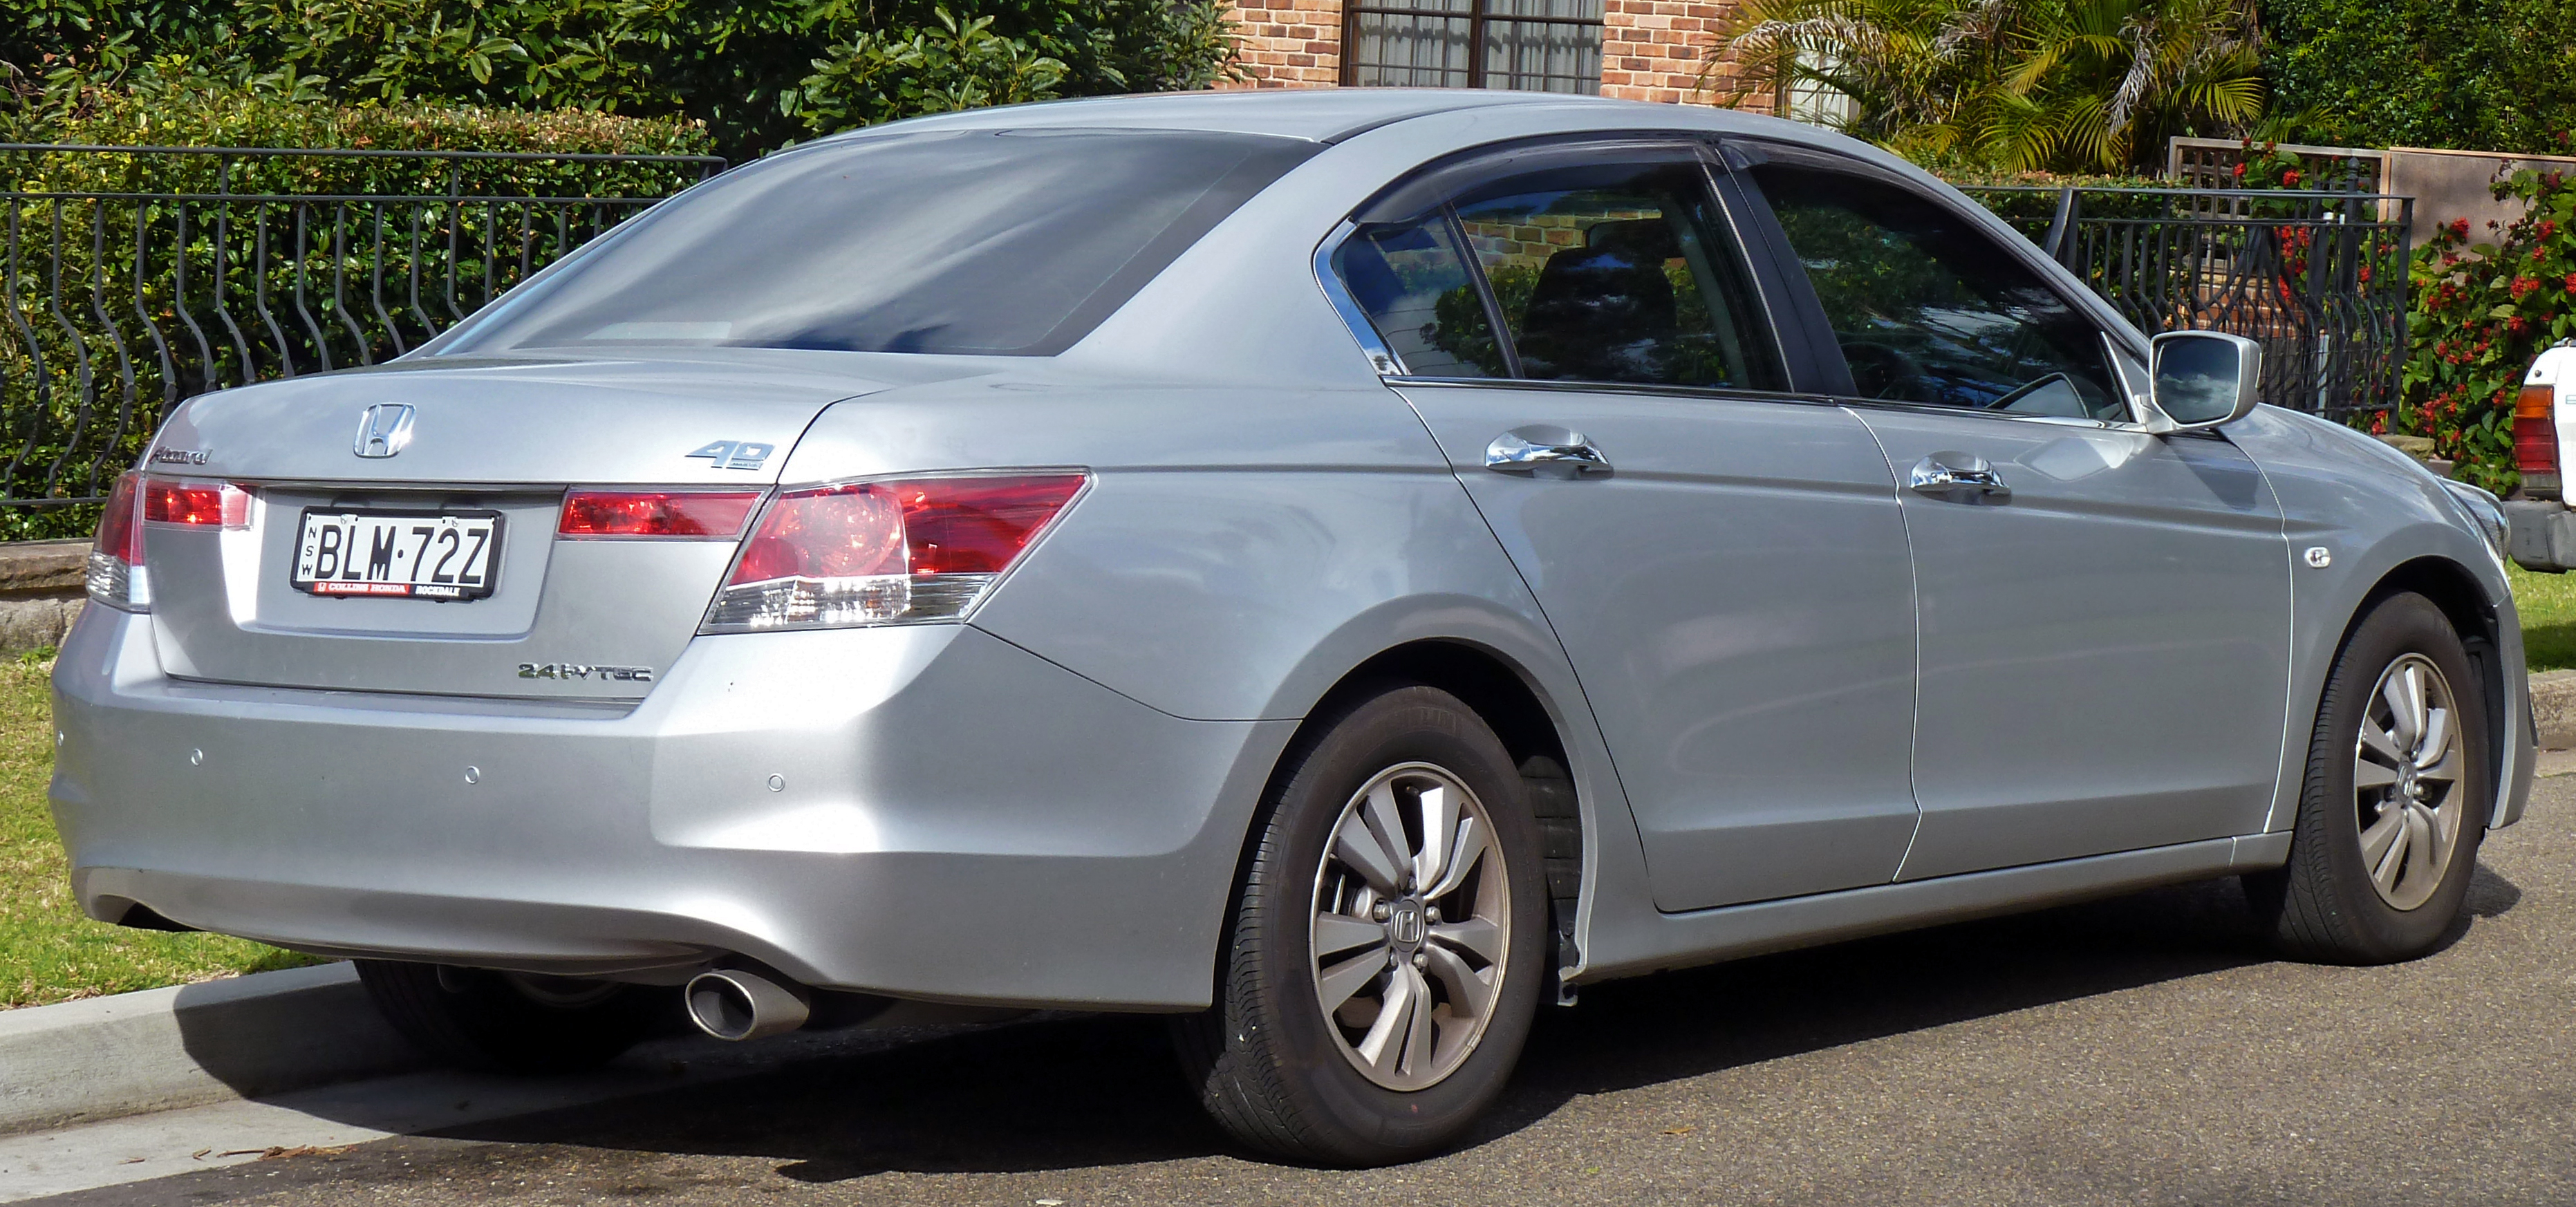 Pictures of honda accord viii sedan 2014 #7